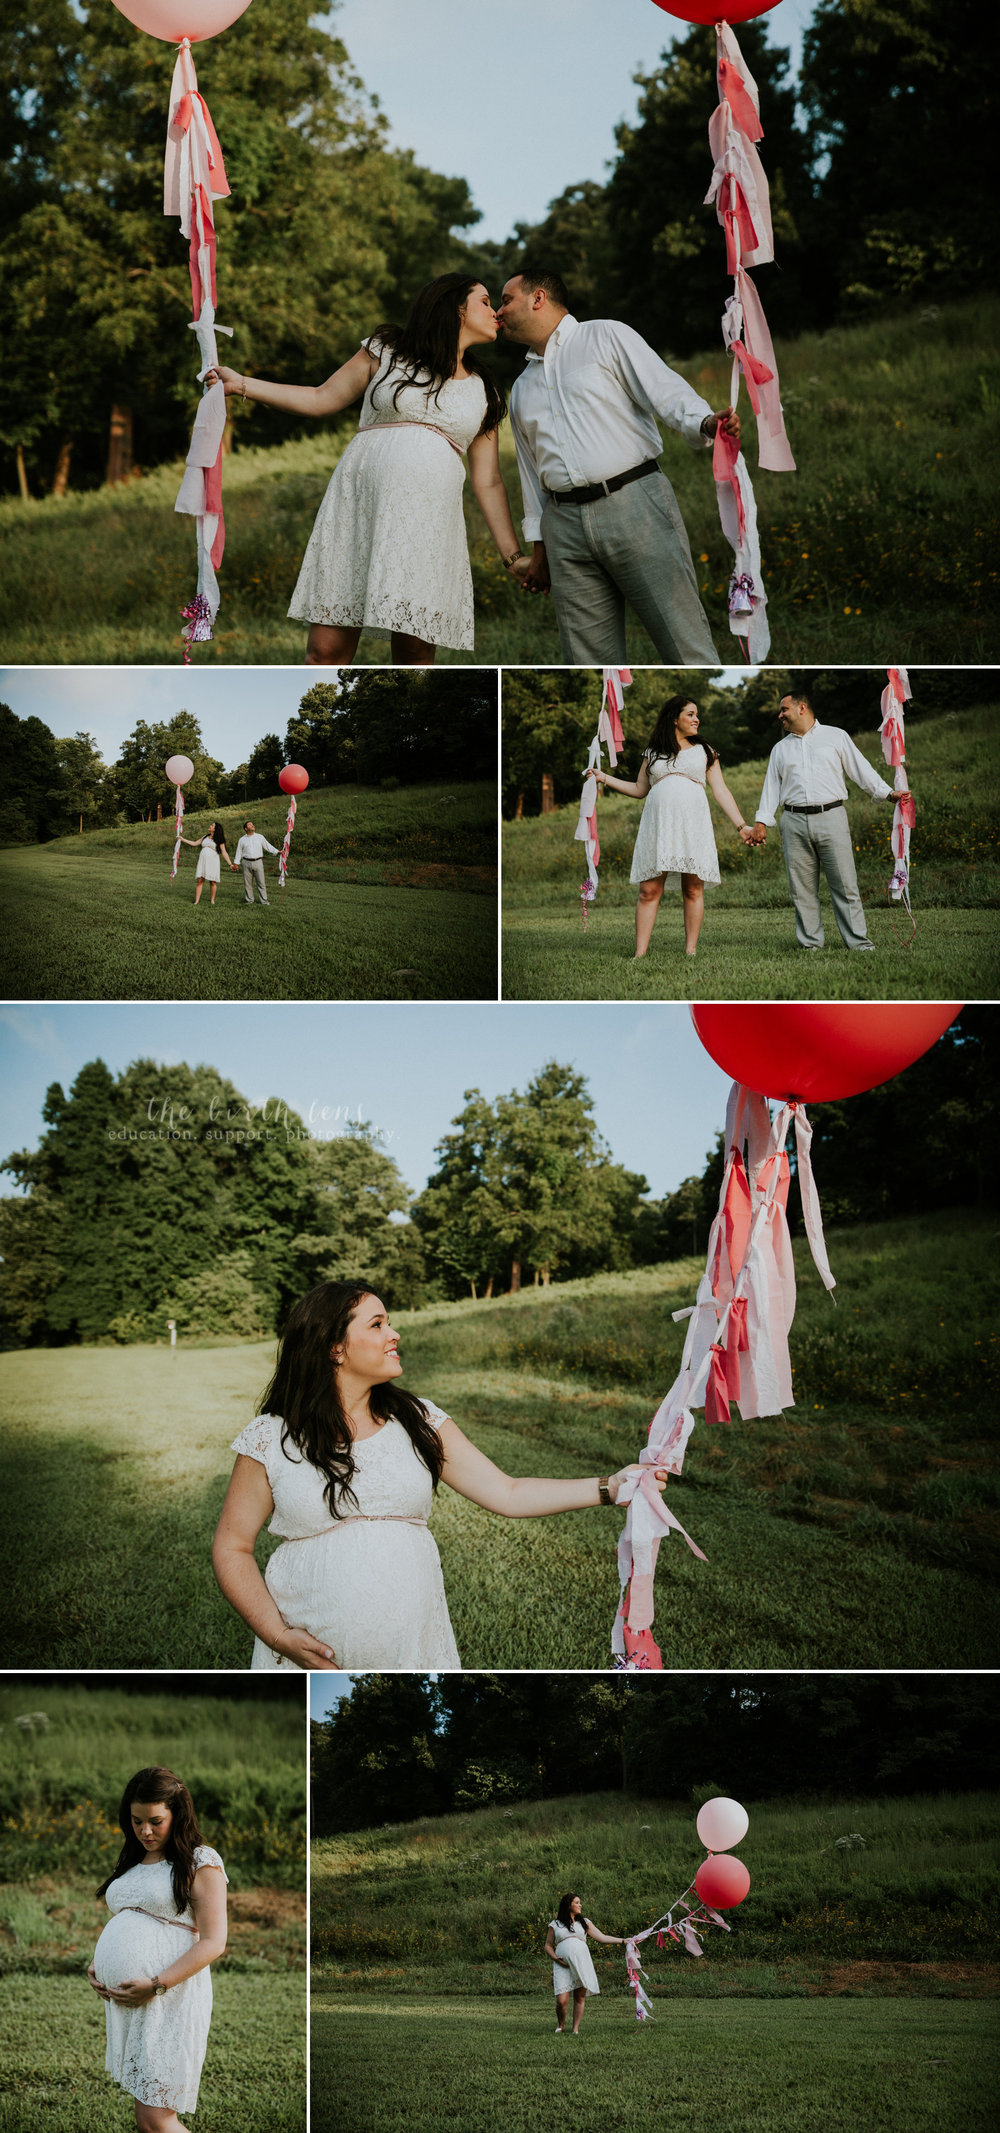 outdoor-maternity-session-with-oversized-balloons-tahoe.jpg